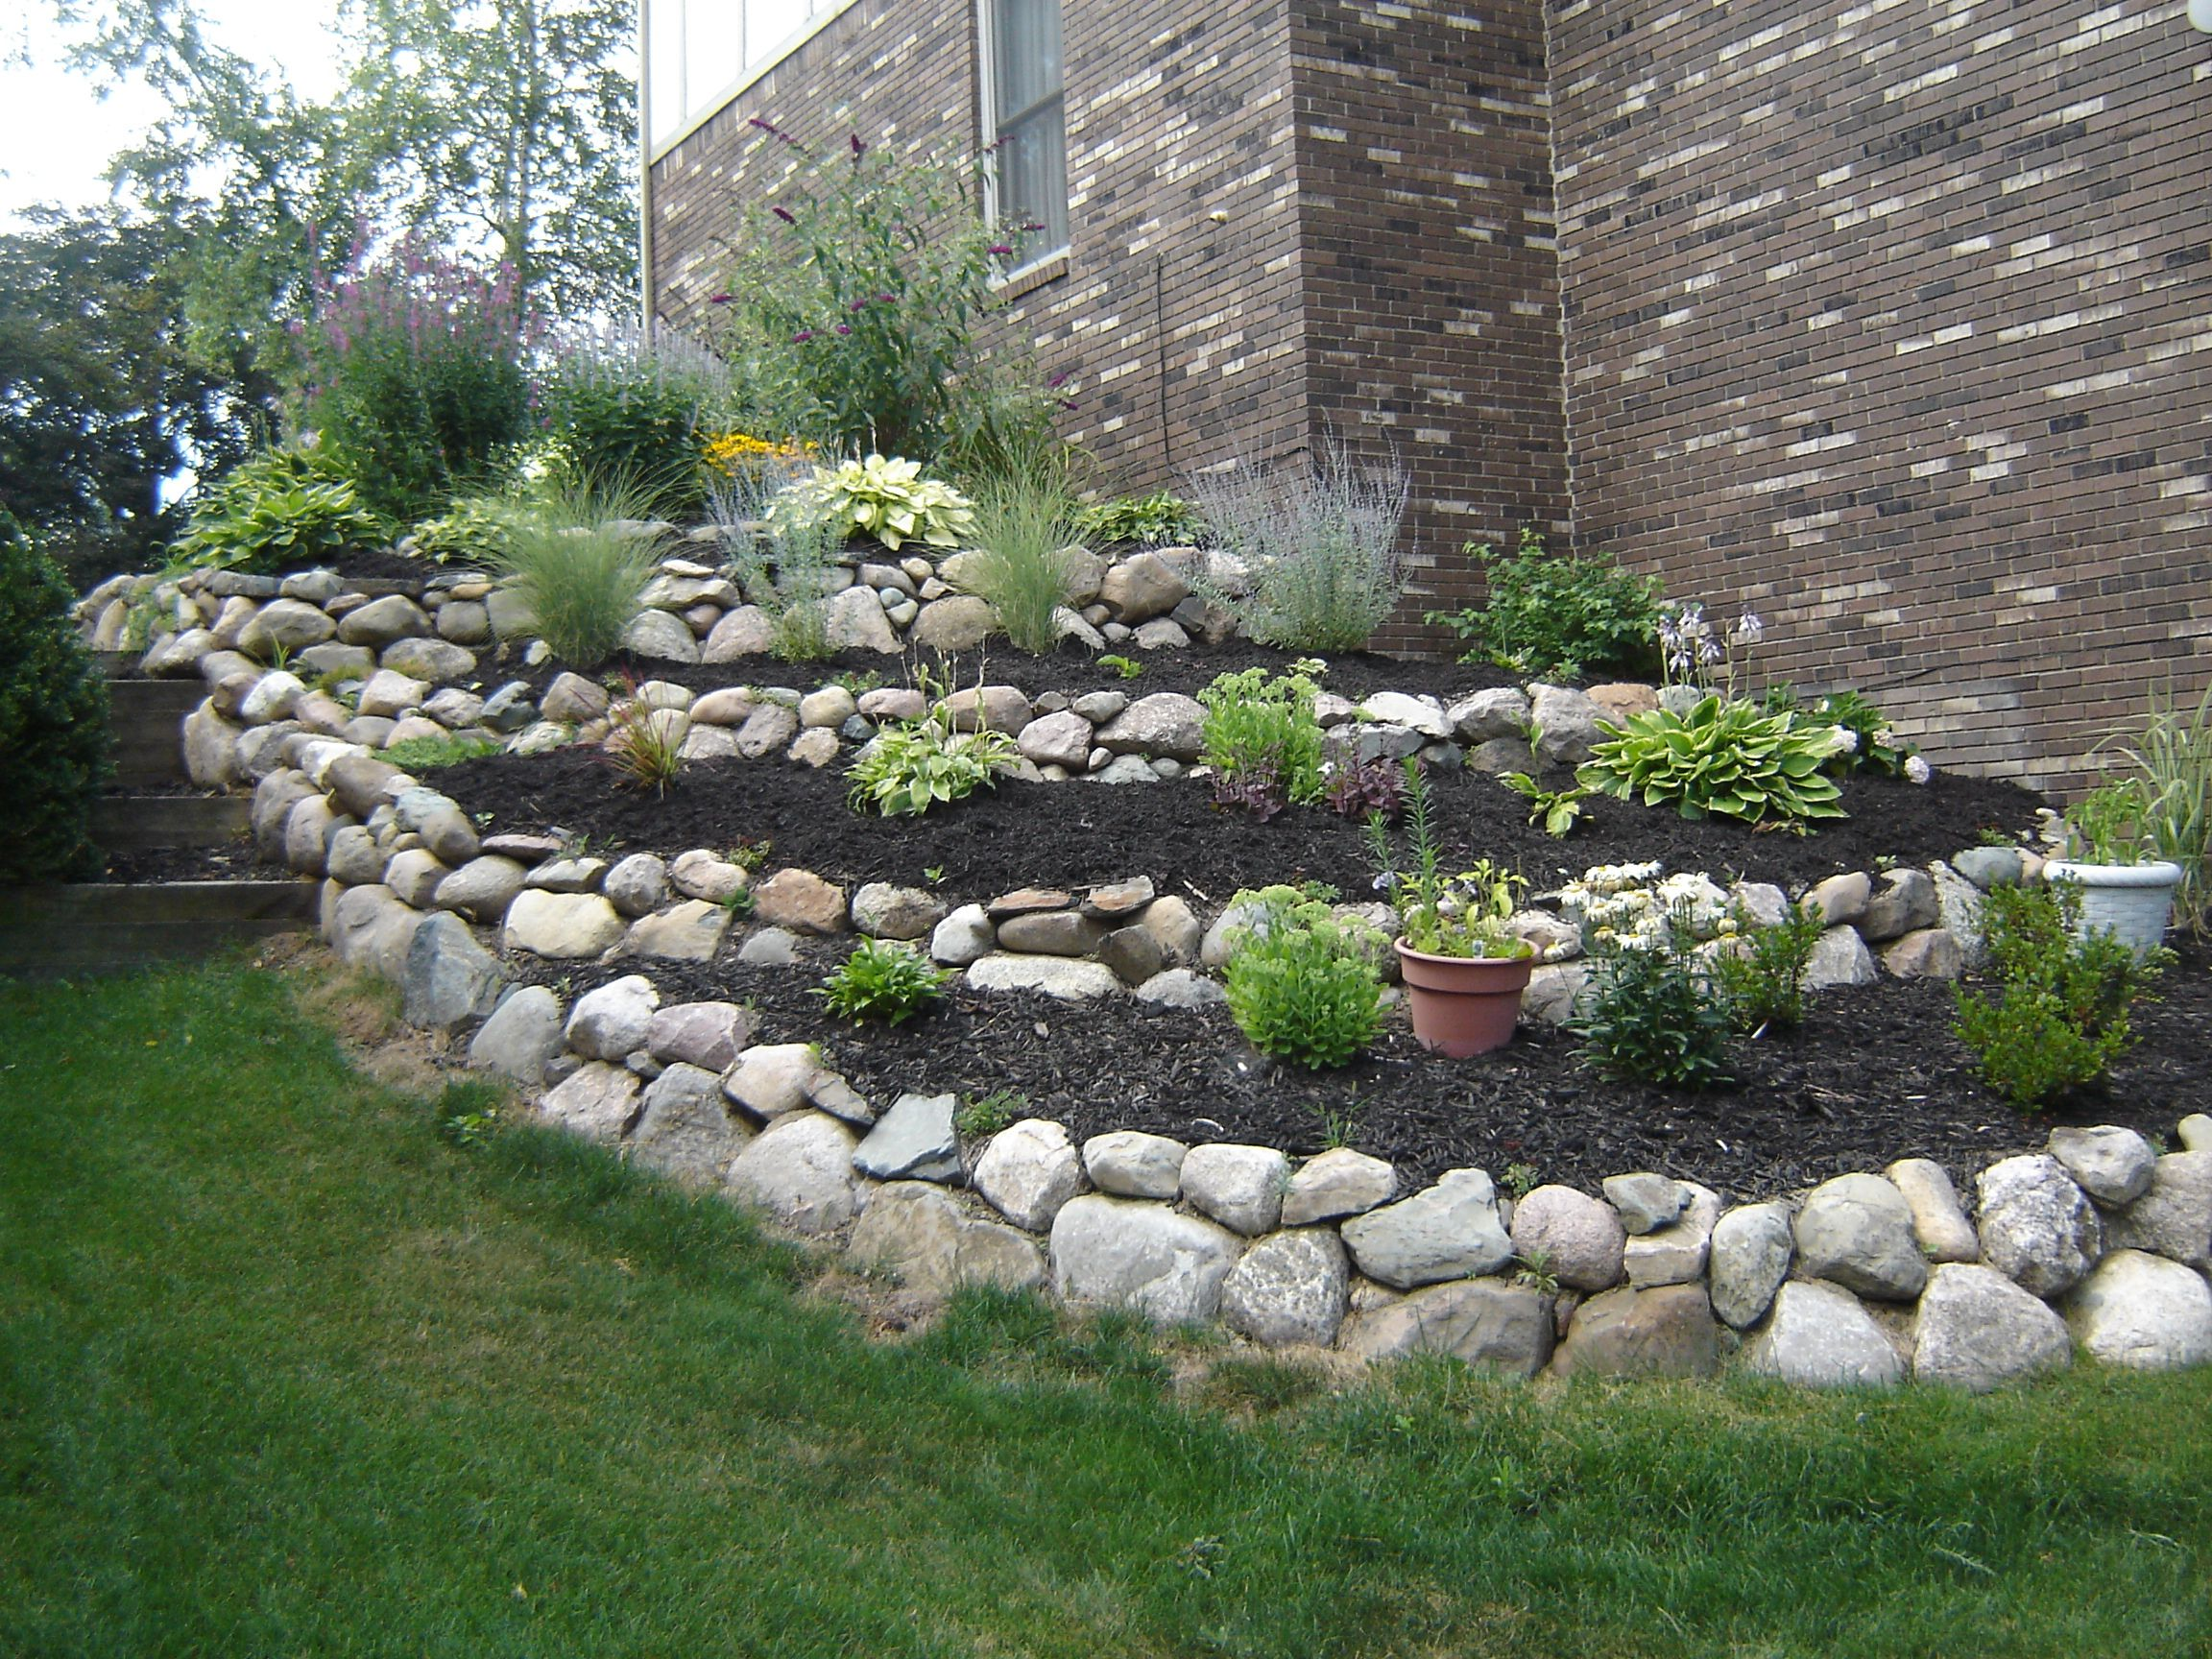 4 Tier Boulder Wall Rock Garden Landscaping Backyard Landscaping Designs Rock Wall Gardens